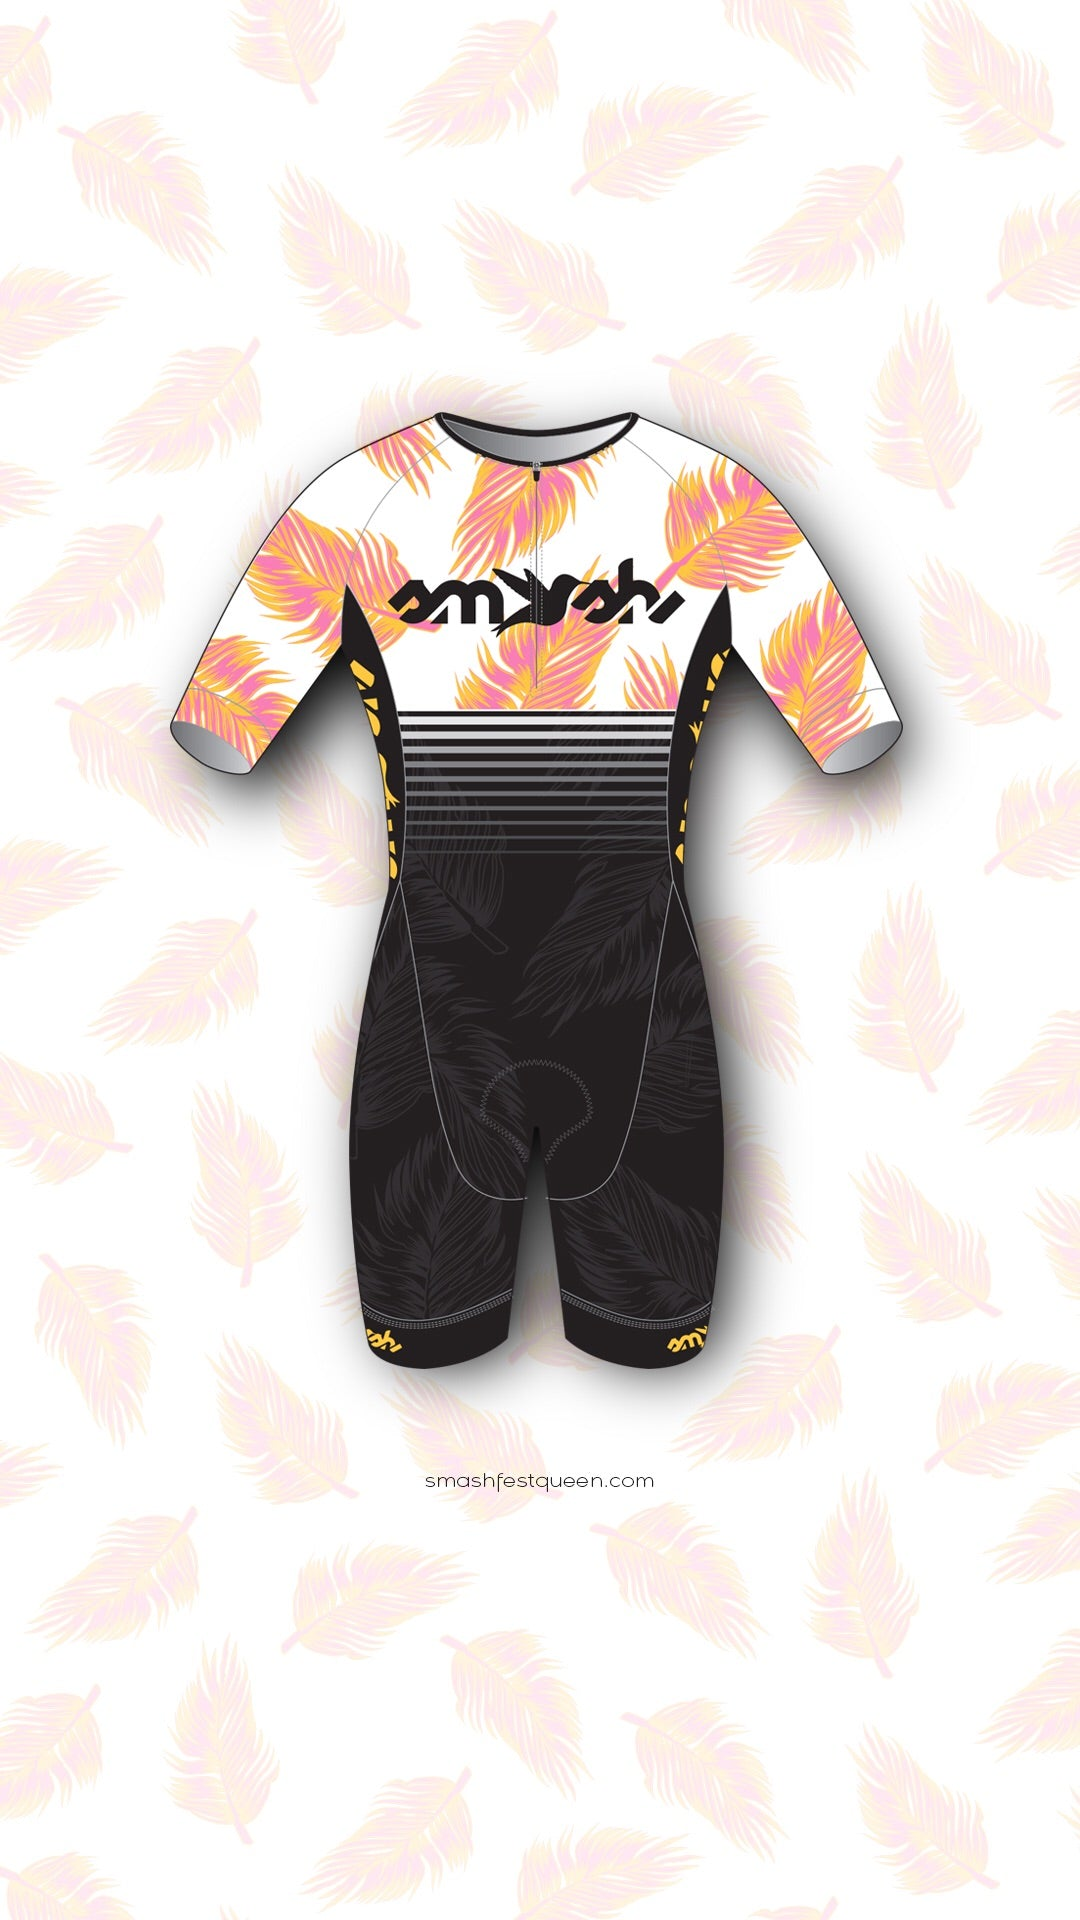 GOLD Custom Aero Suit